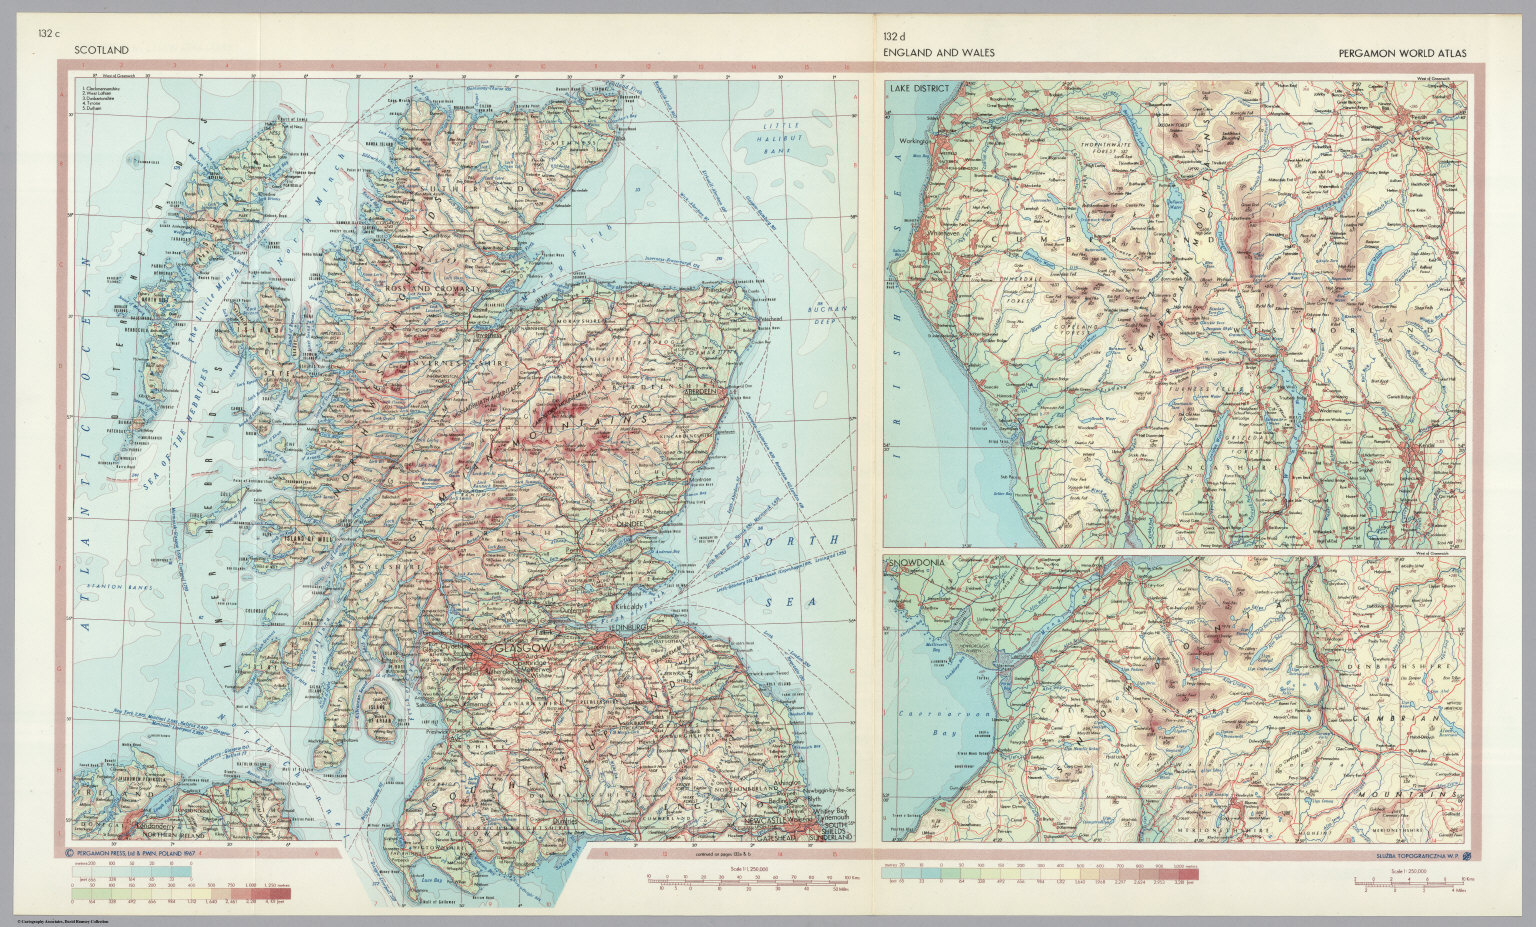 scotland england and wales pergamon world atlas